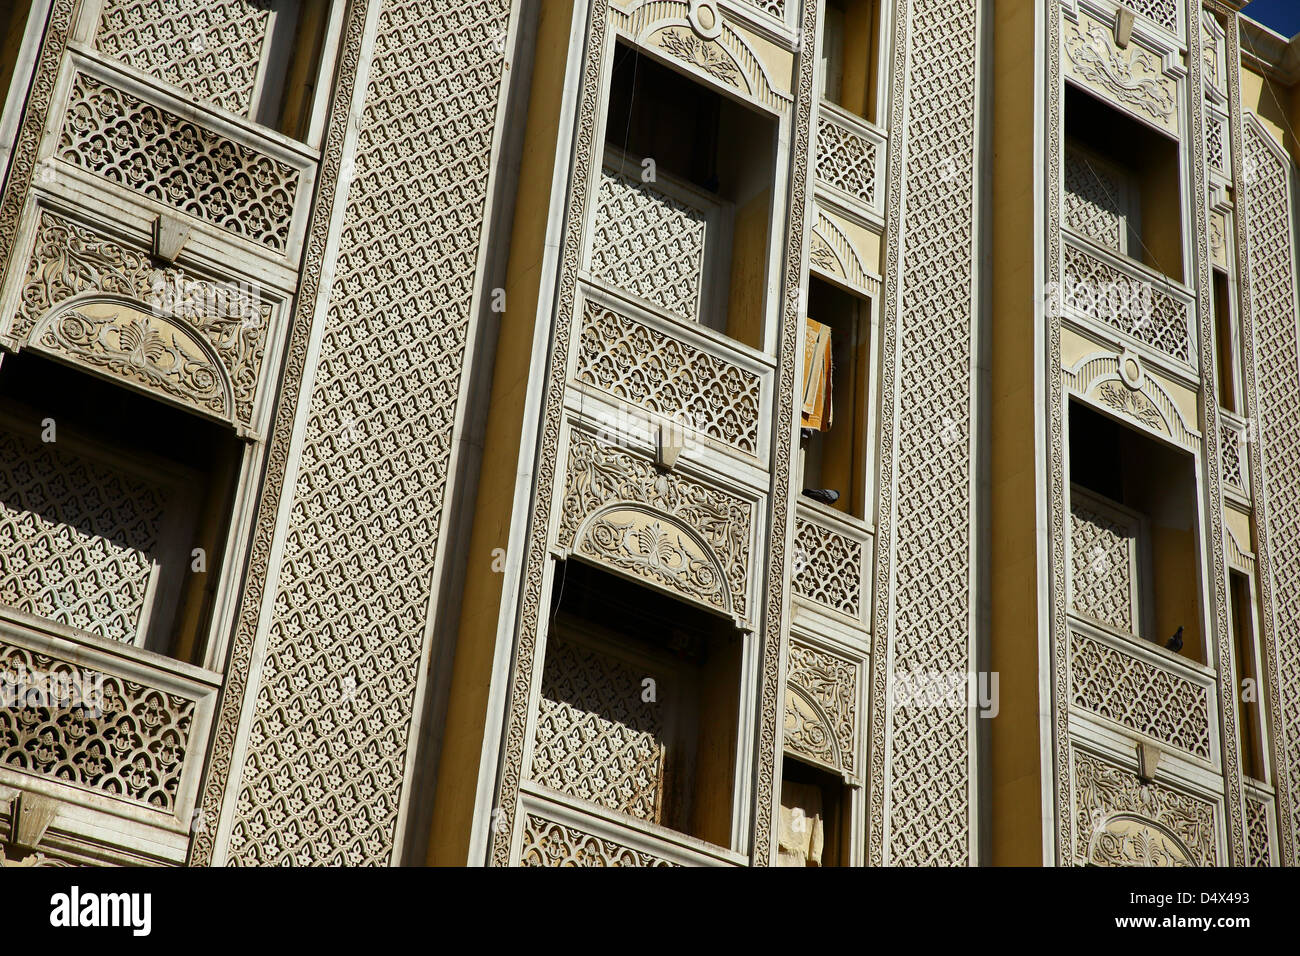 Architectural detail, Dubai, United Arab Emirates - Stock Image